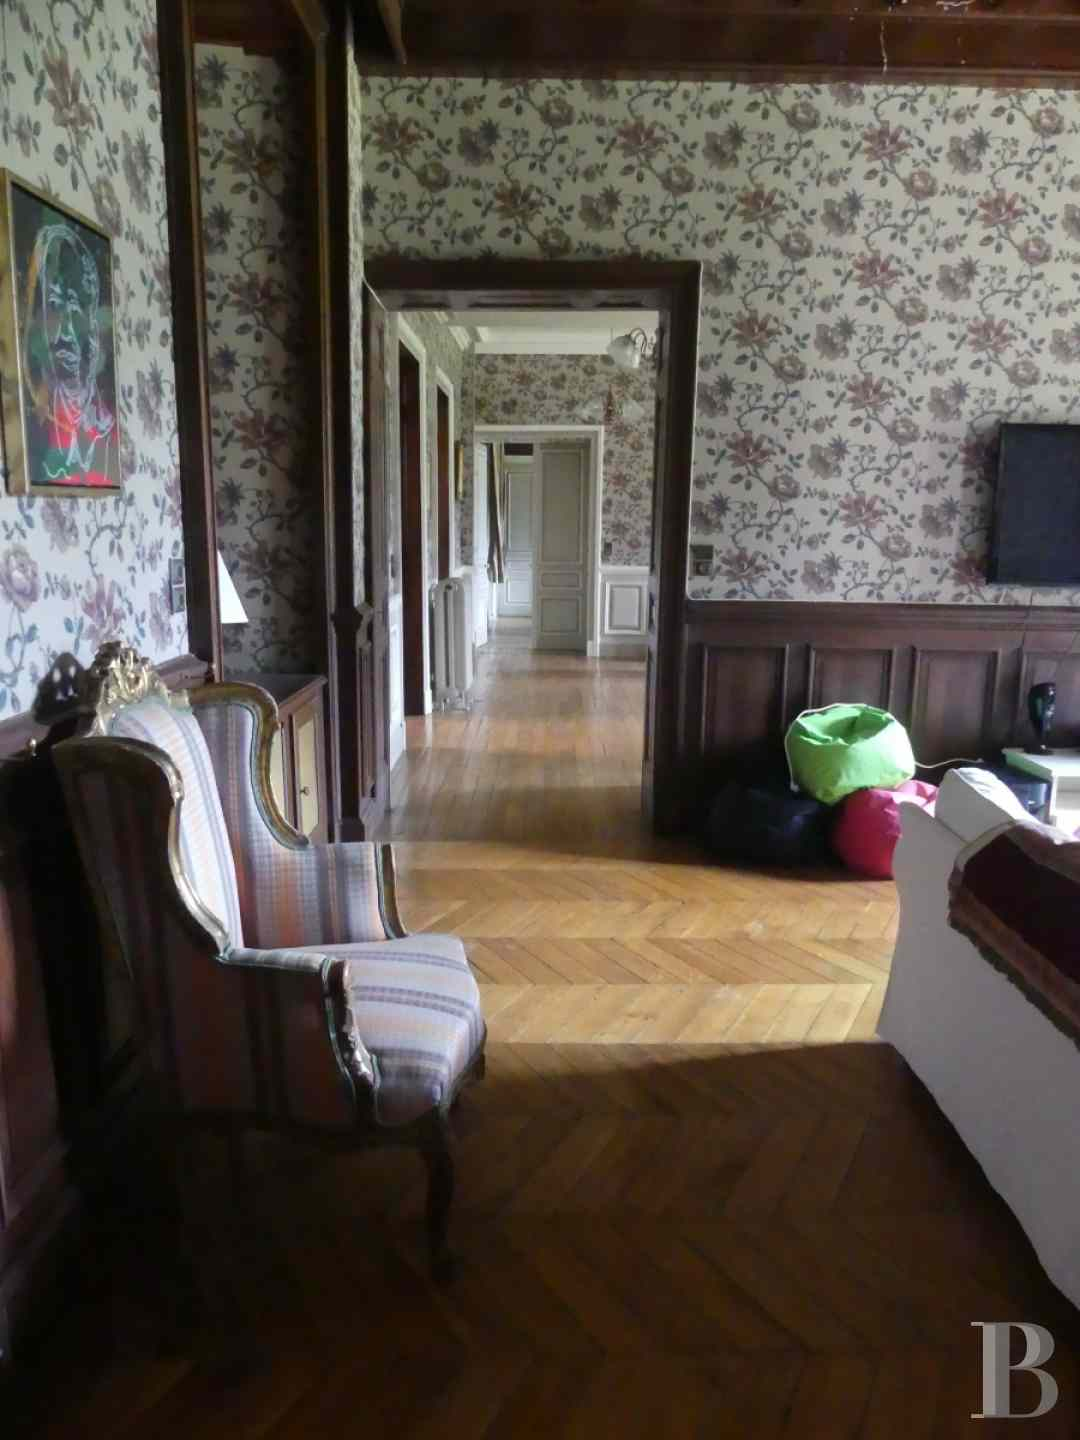 chateaux a vendre bourgogne chateau domaine - 9 zoom